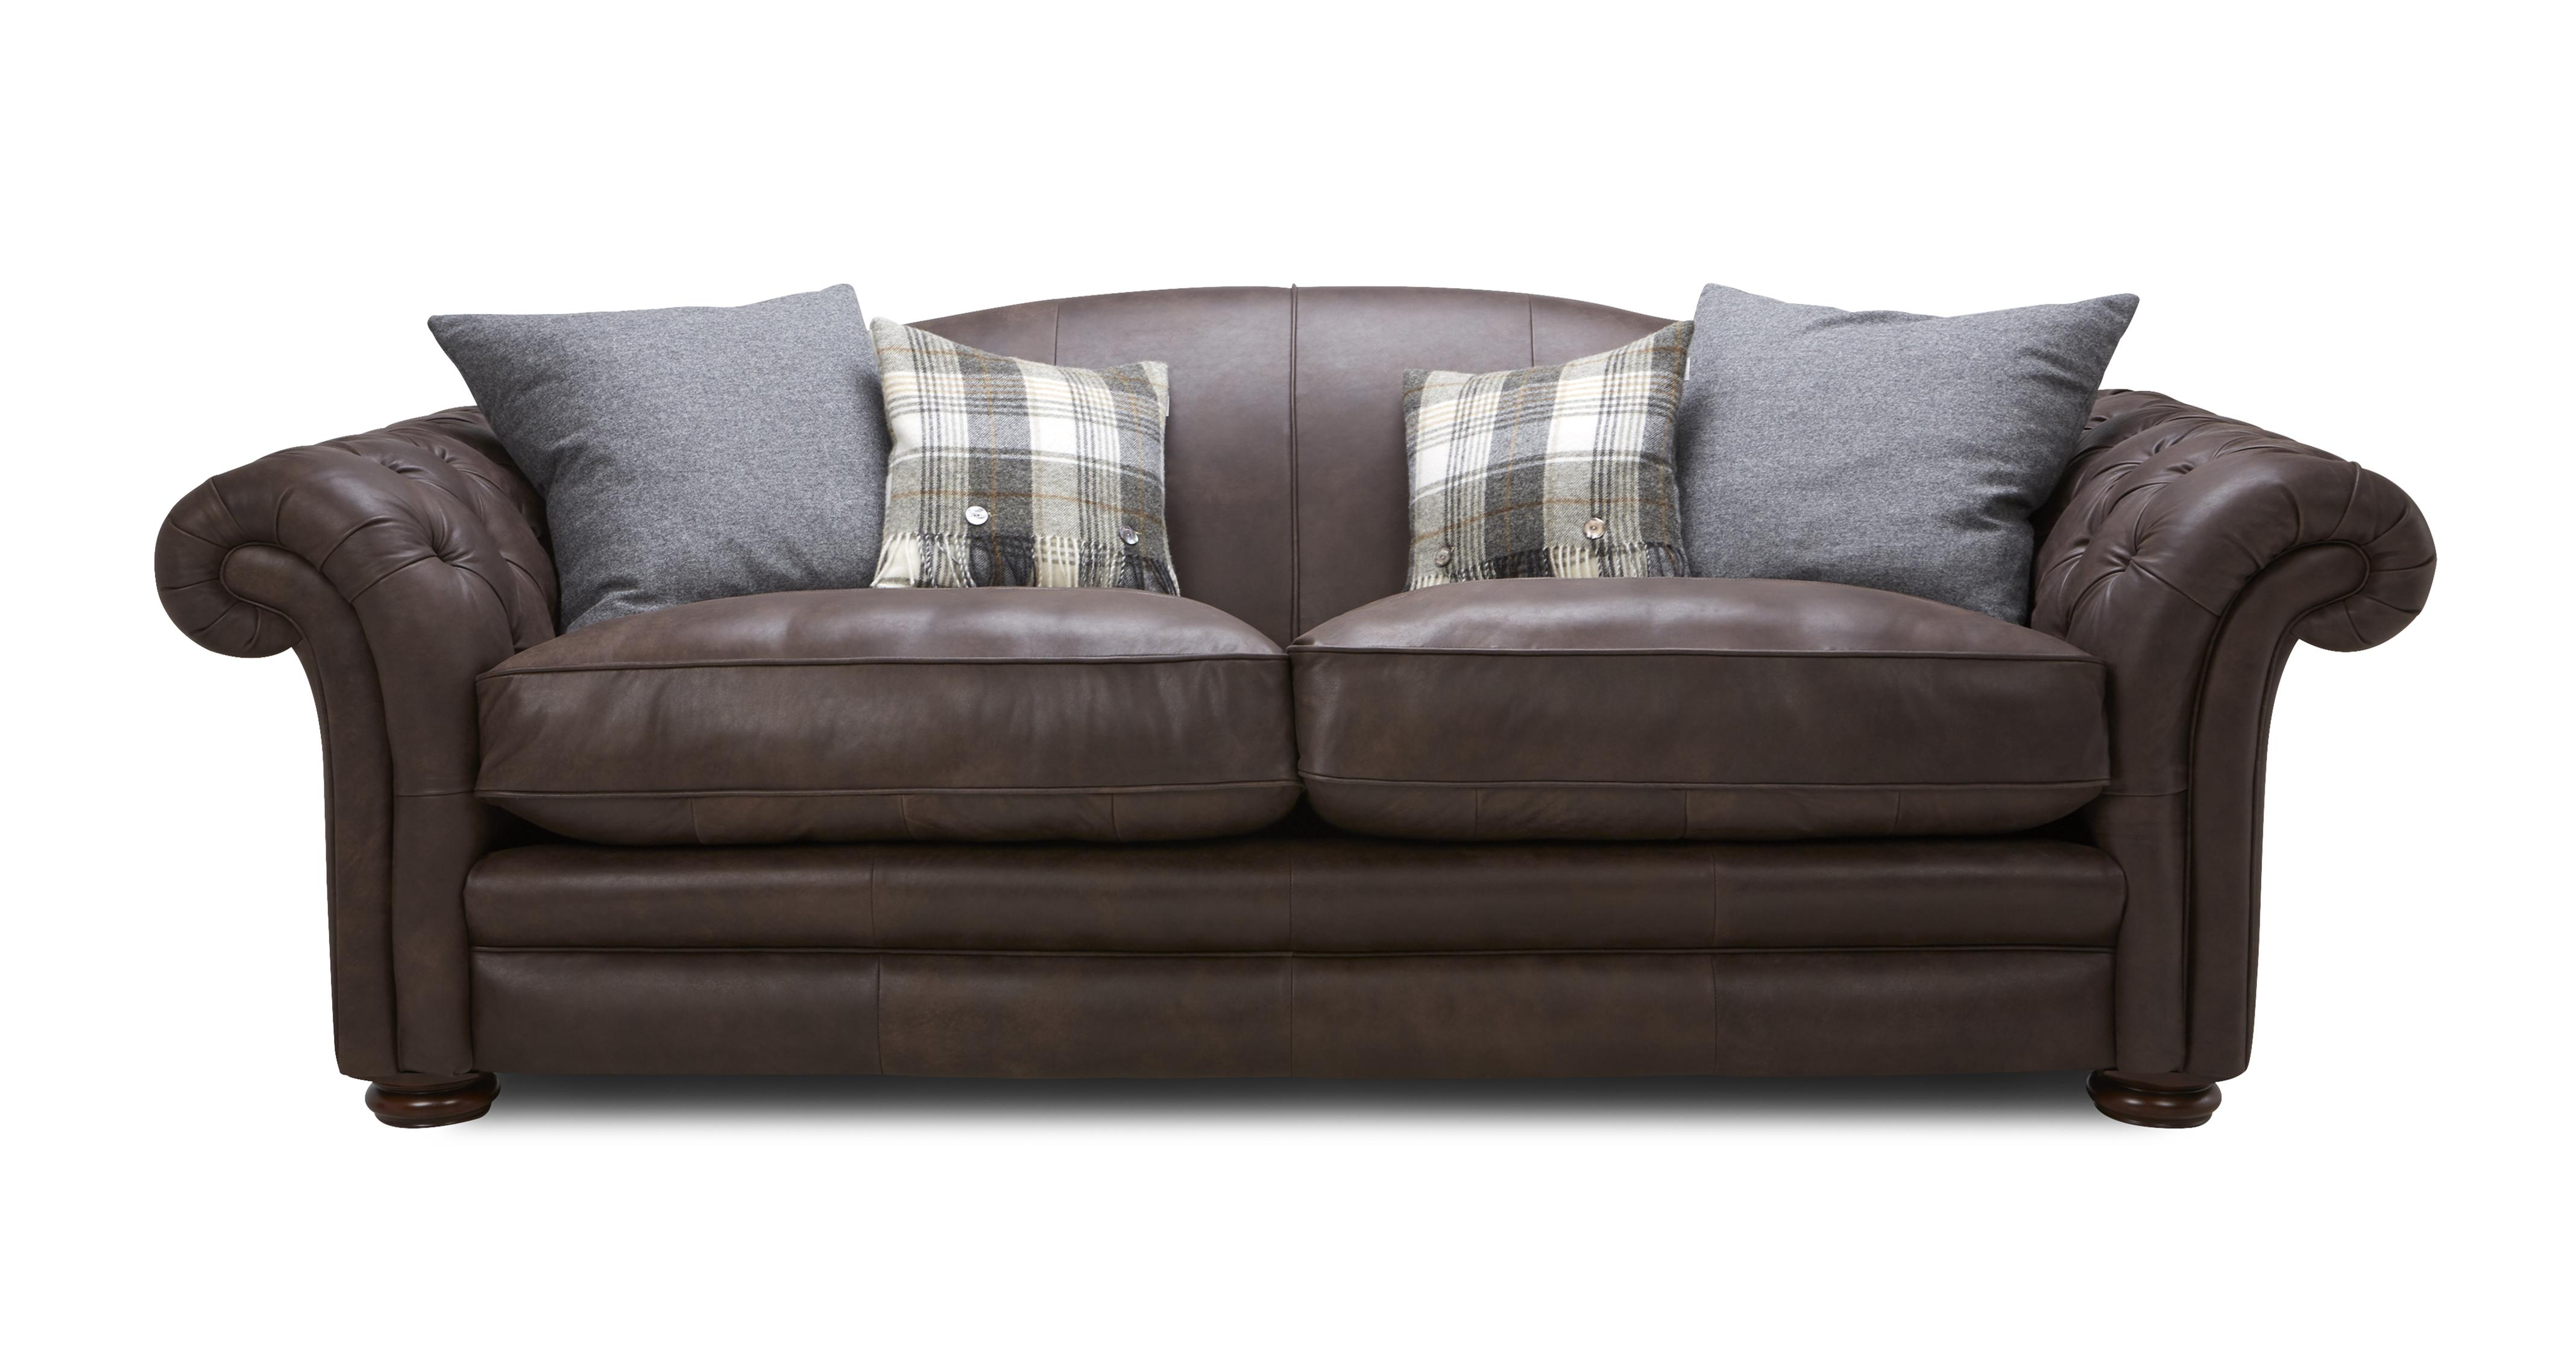 Dfs Sofa Care Loch Leven Leather 4 Seater Sofa | Dfs